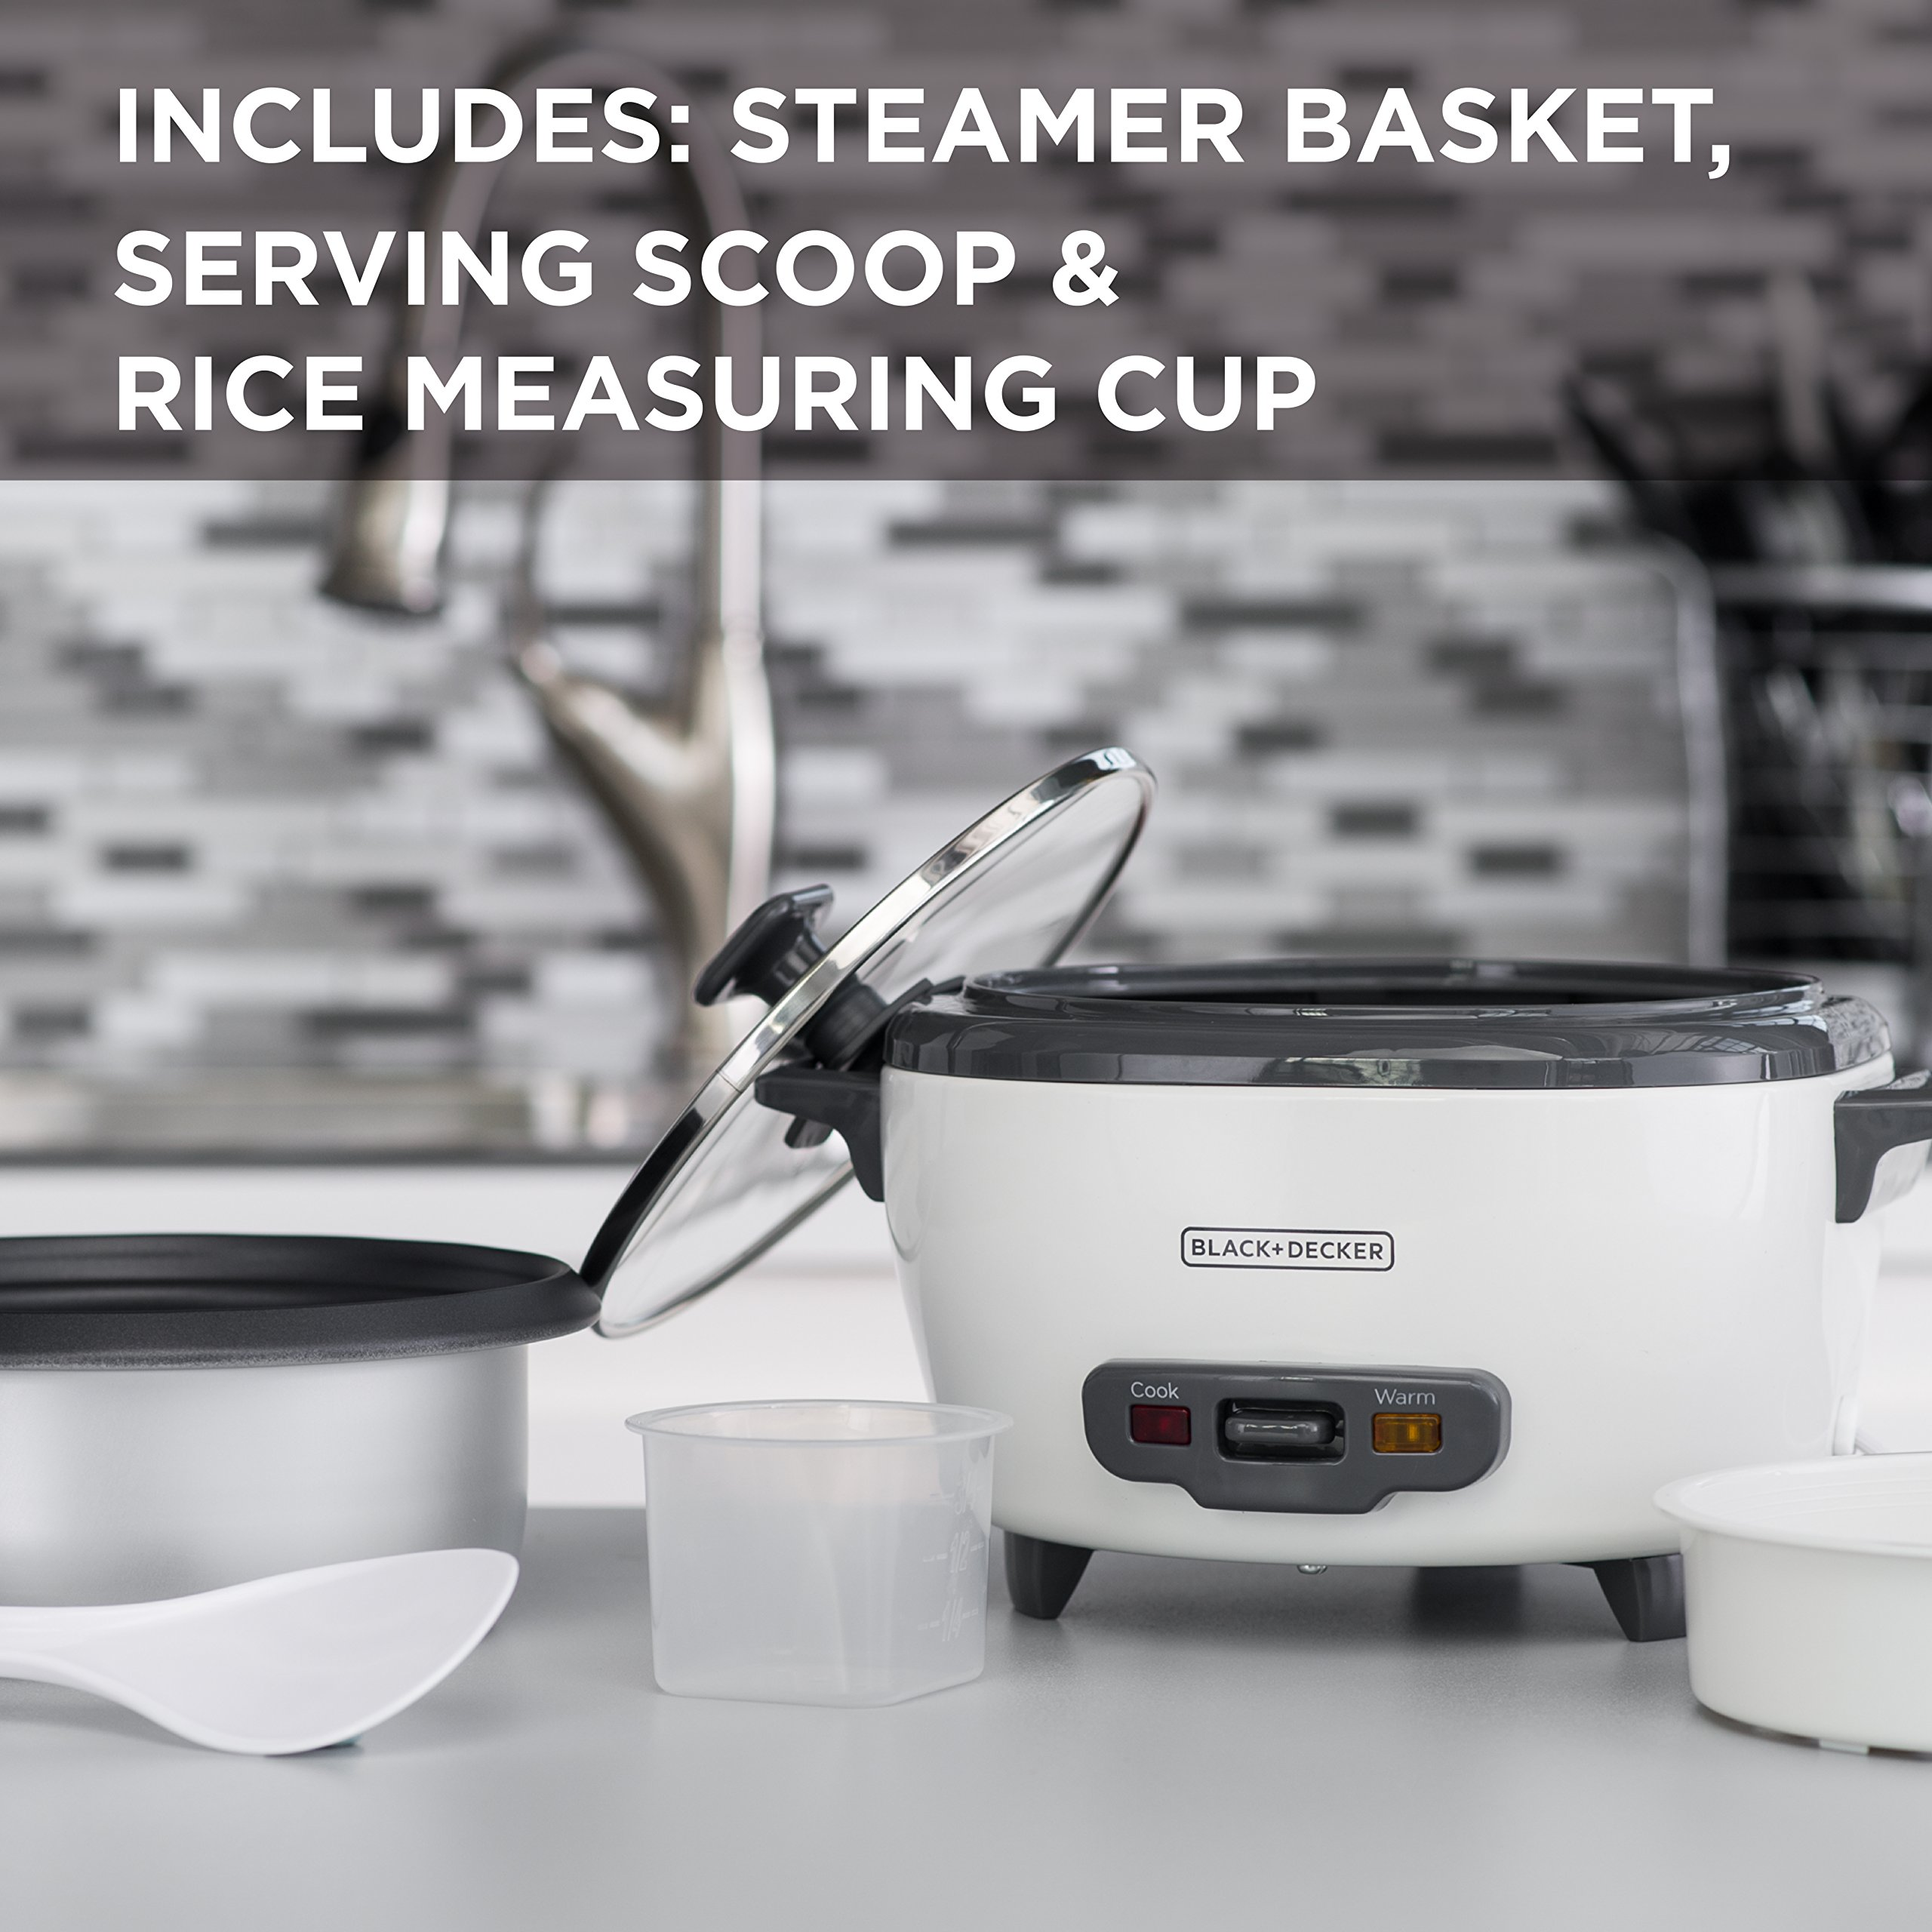 BLACK+DECKER RC506 6-Cup Cooked/3-Cup Uncooked Rice Cooker and Food Steamer, White by BLACK+DECKER (Image #3)